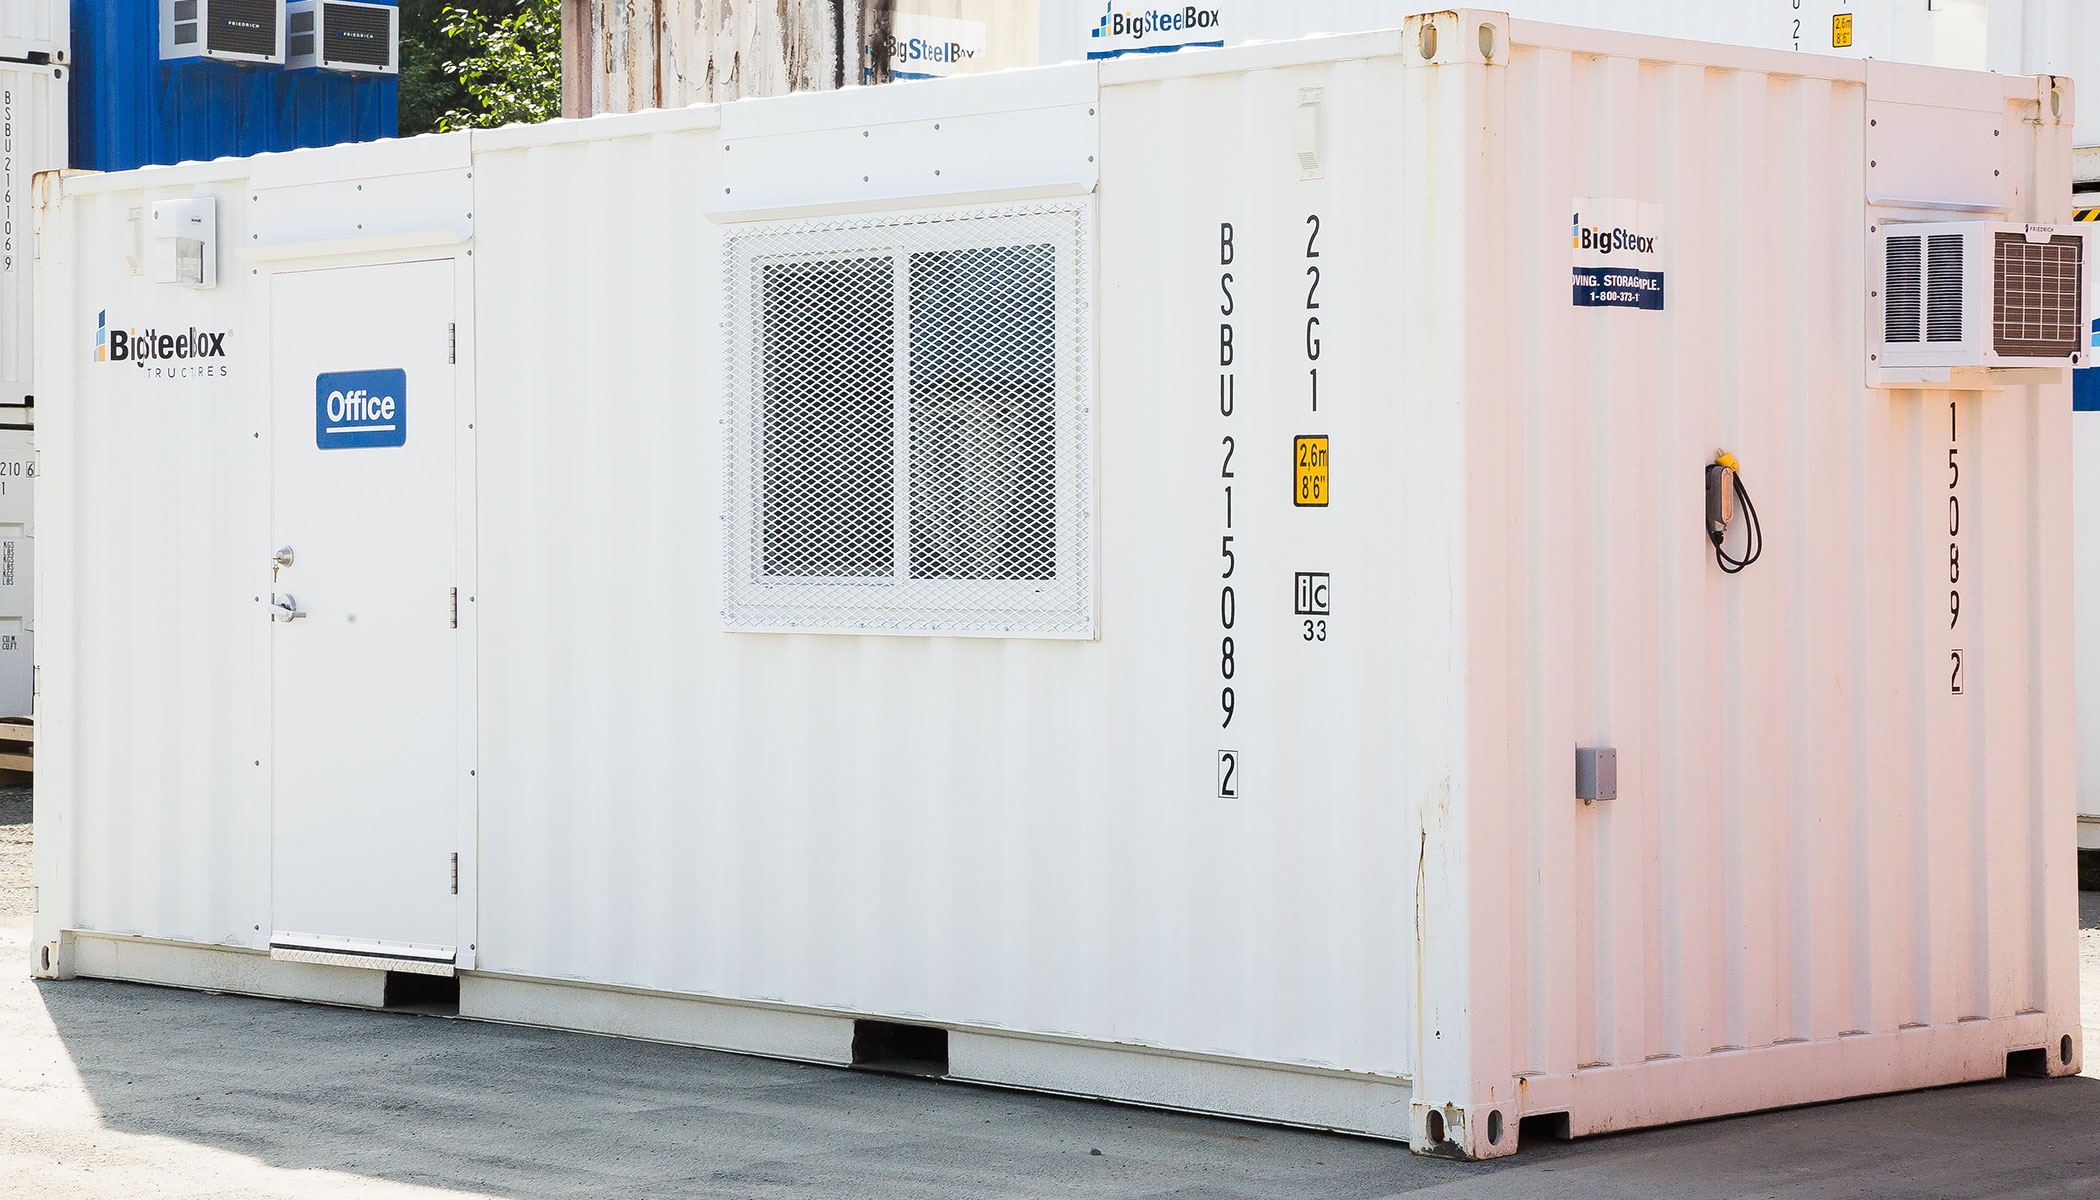 Shipping container office - BigSteelBox